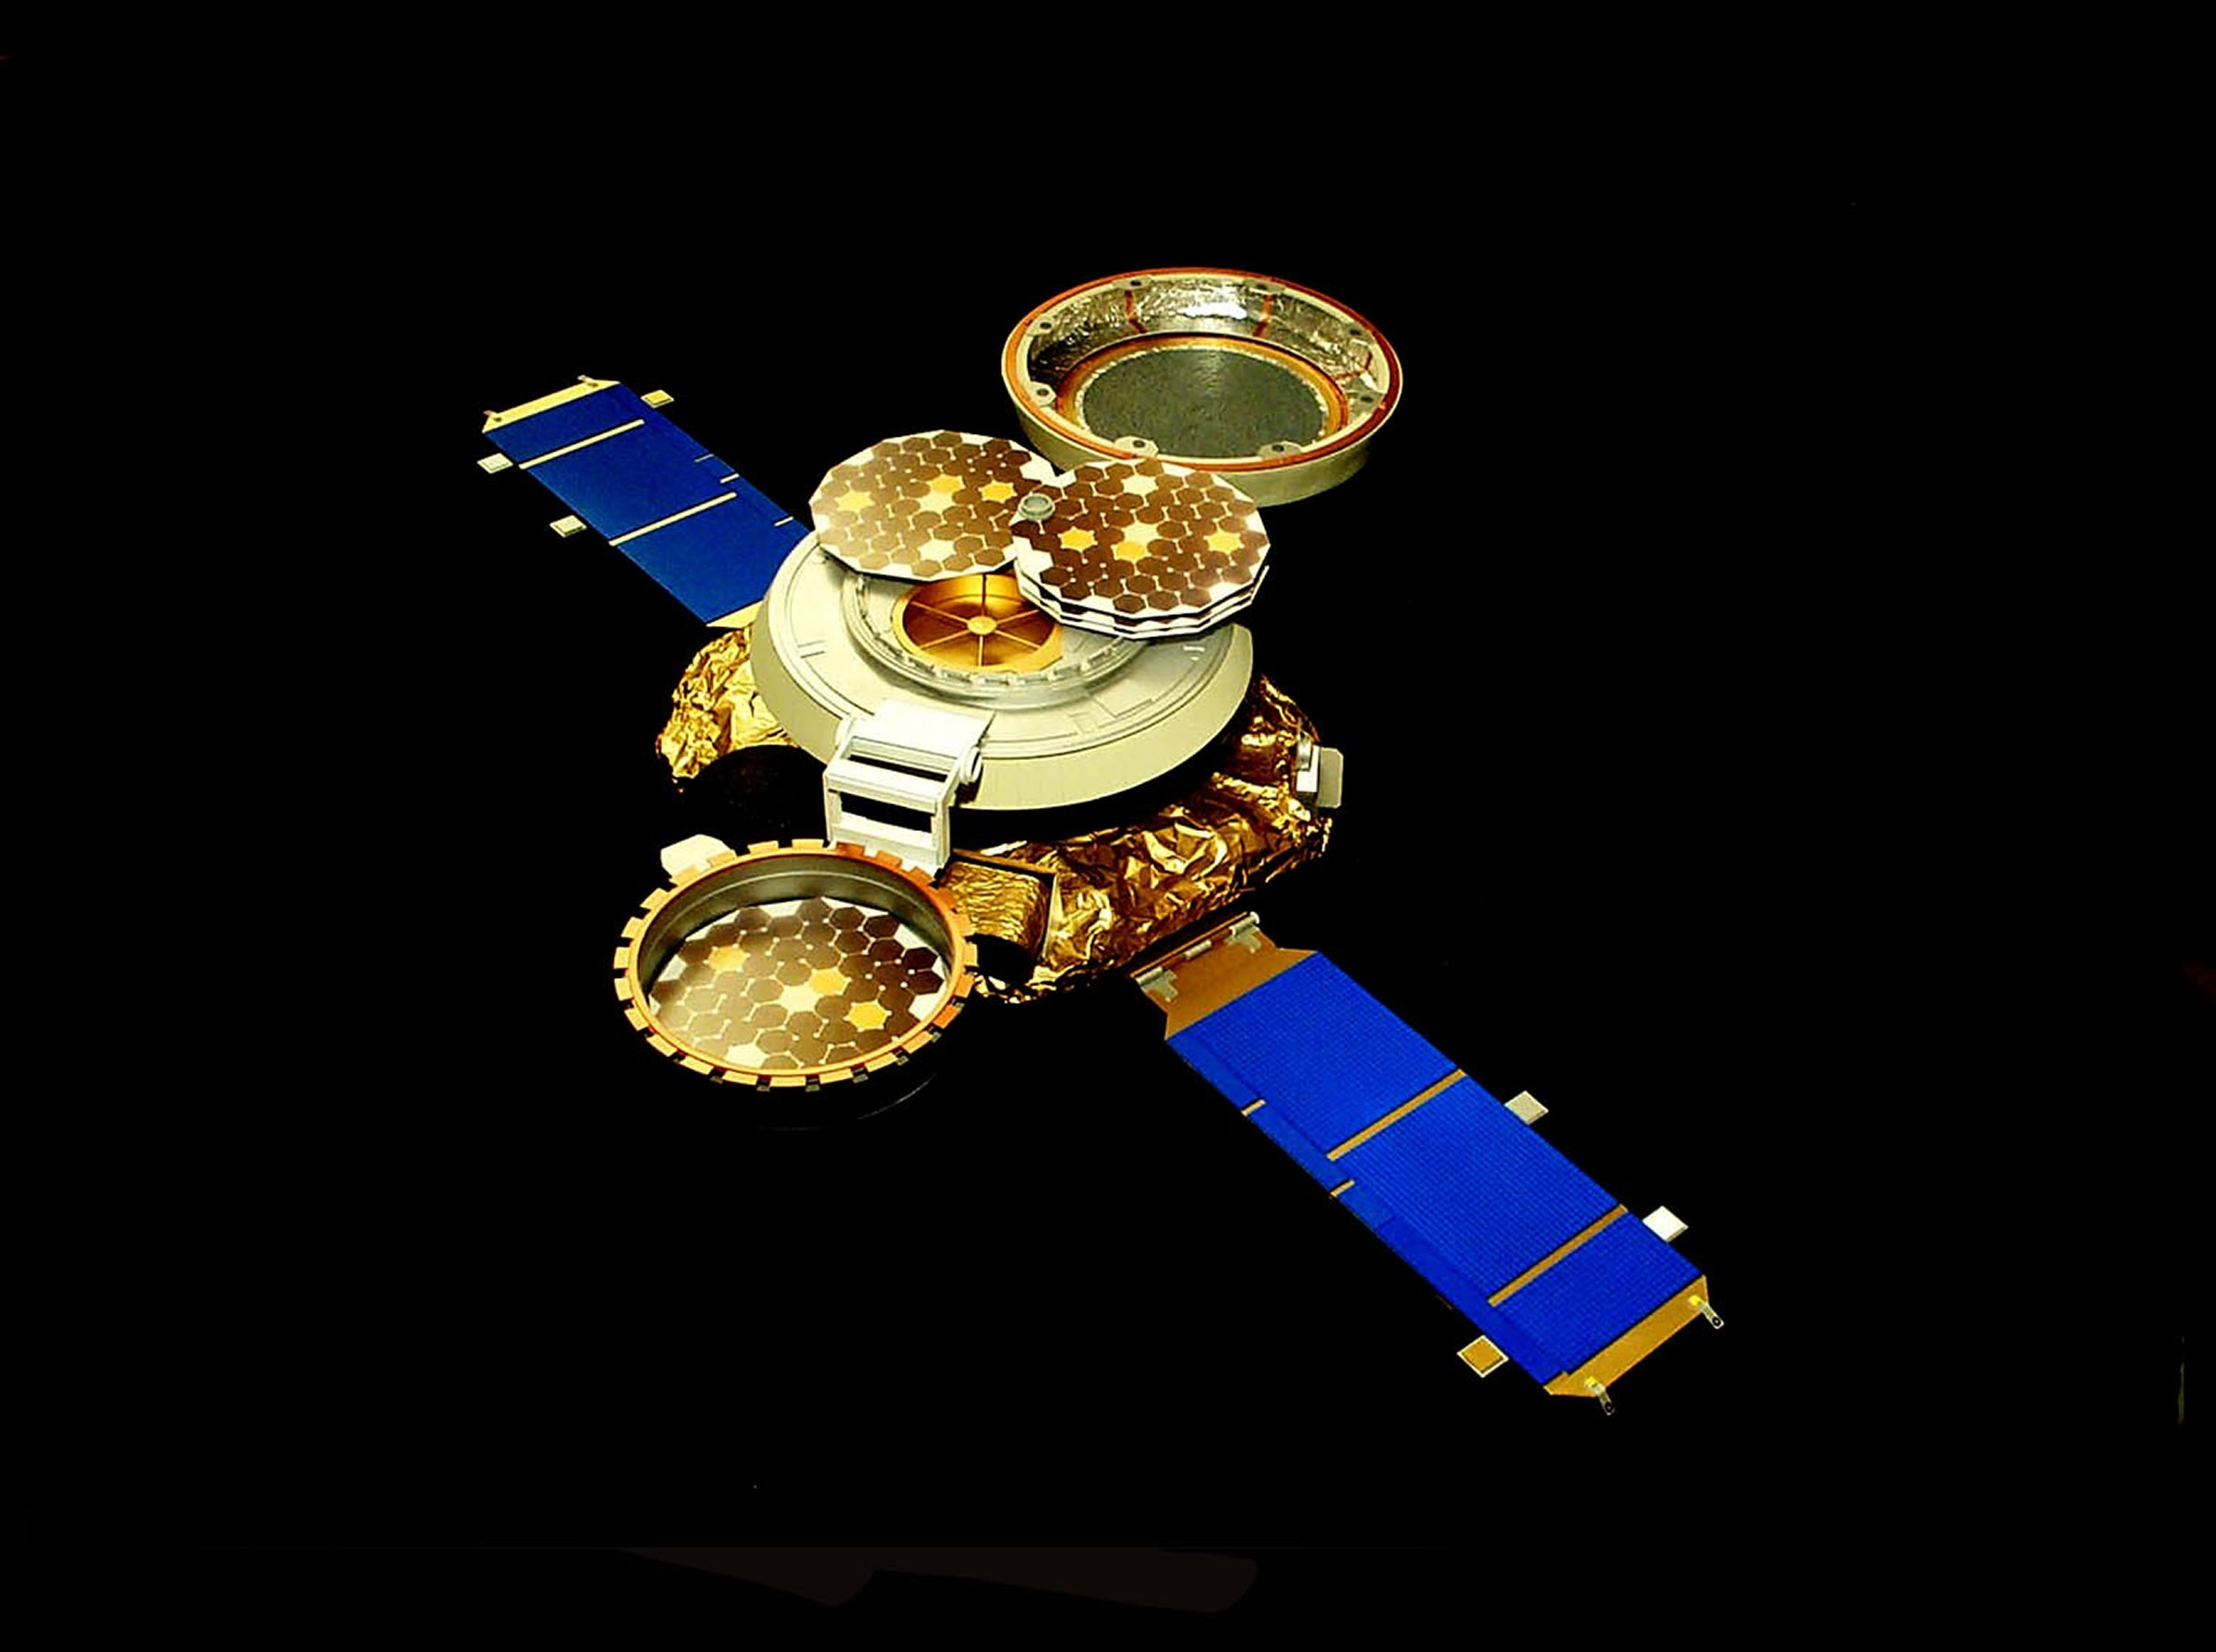 Artist's rendering of the Genesis spacecraft as it appeared in space with wafers of gold and other materials deployed to catch solar wind particles.